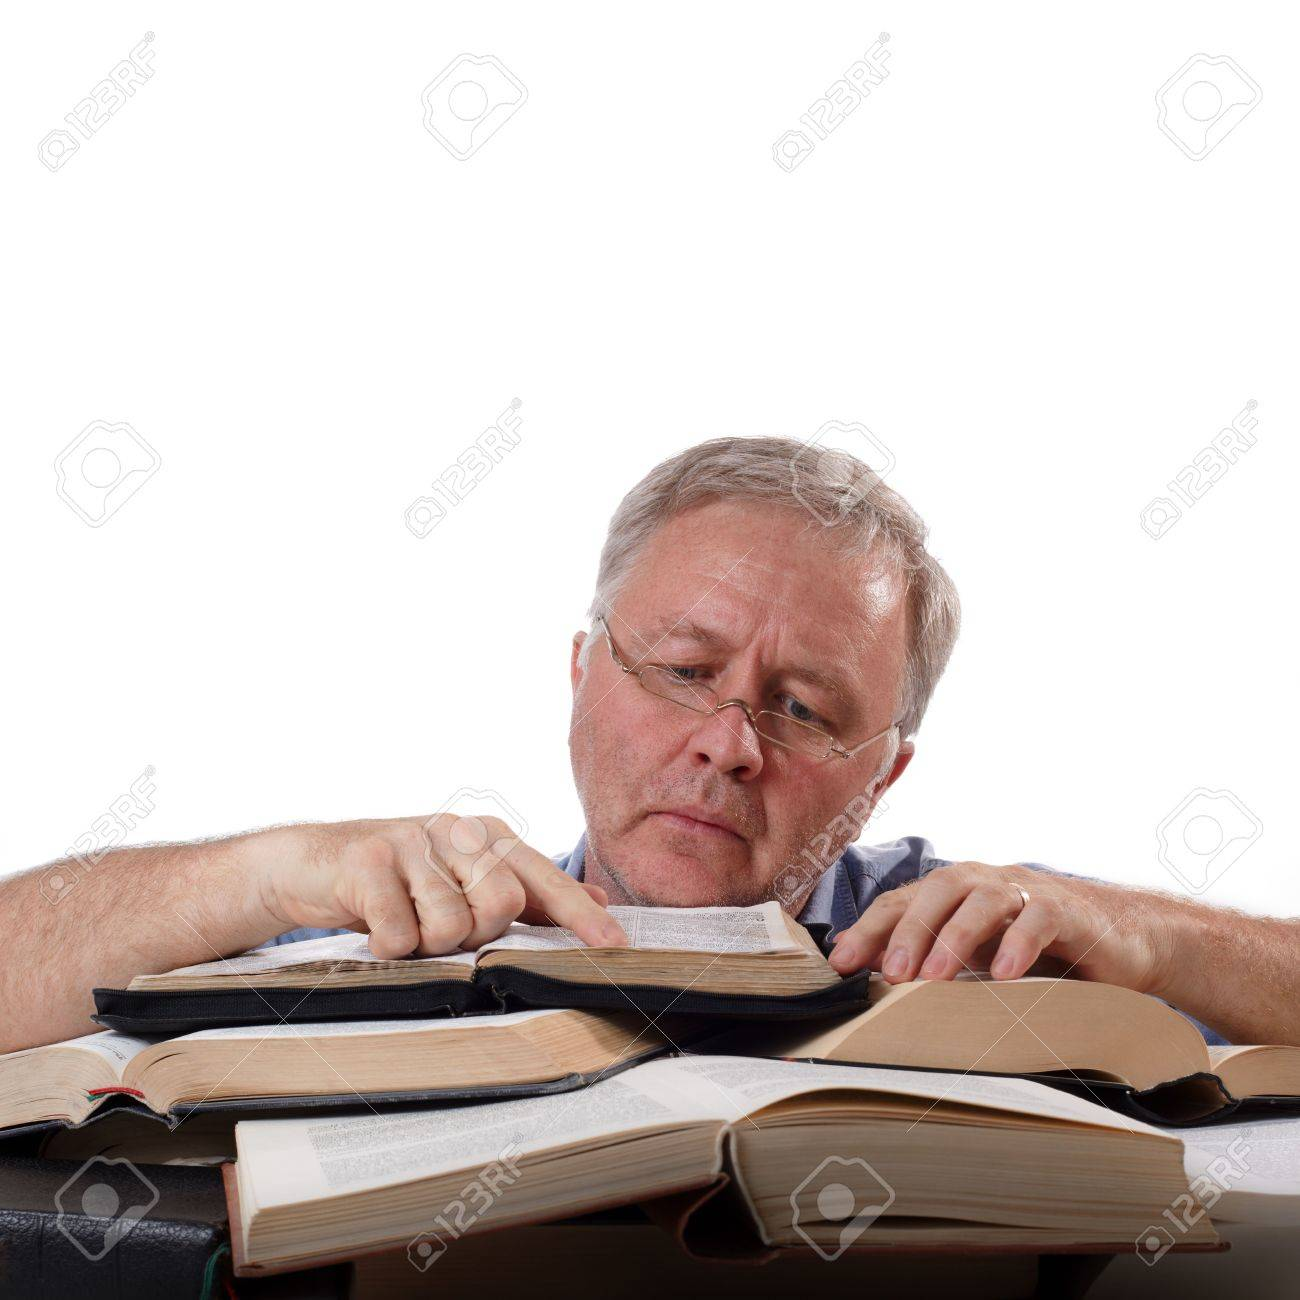 Man with glasses working with many books Stock Photo - 5137080